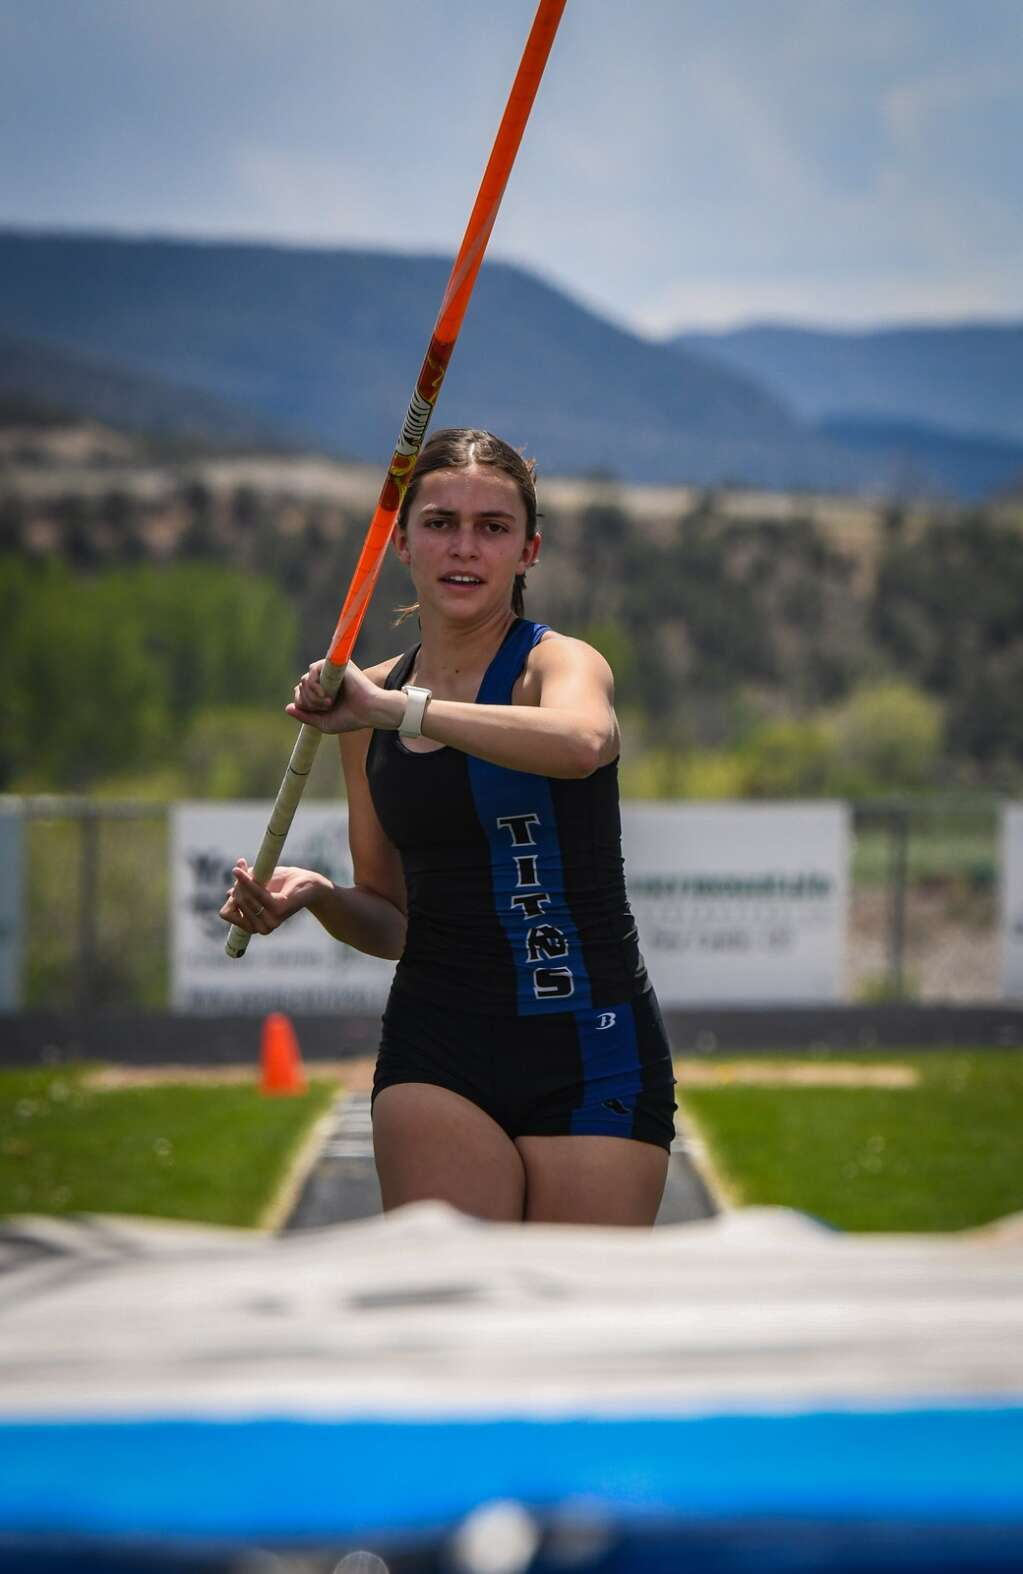 A Coal Ridge High School pole vaulter competes in the Demon Invitational girls pole vaulting competition.  |Chelsea Self / Post Independent